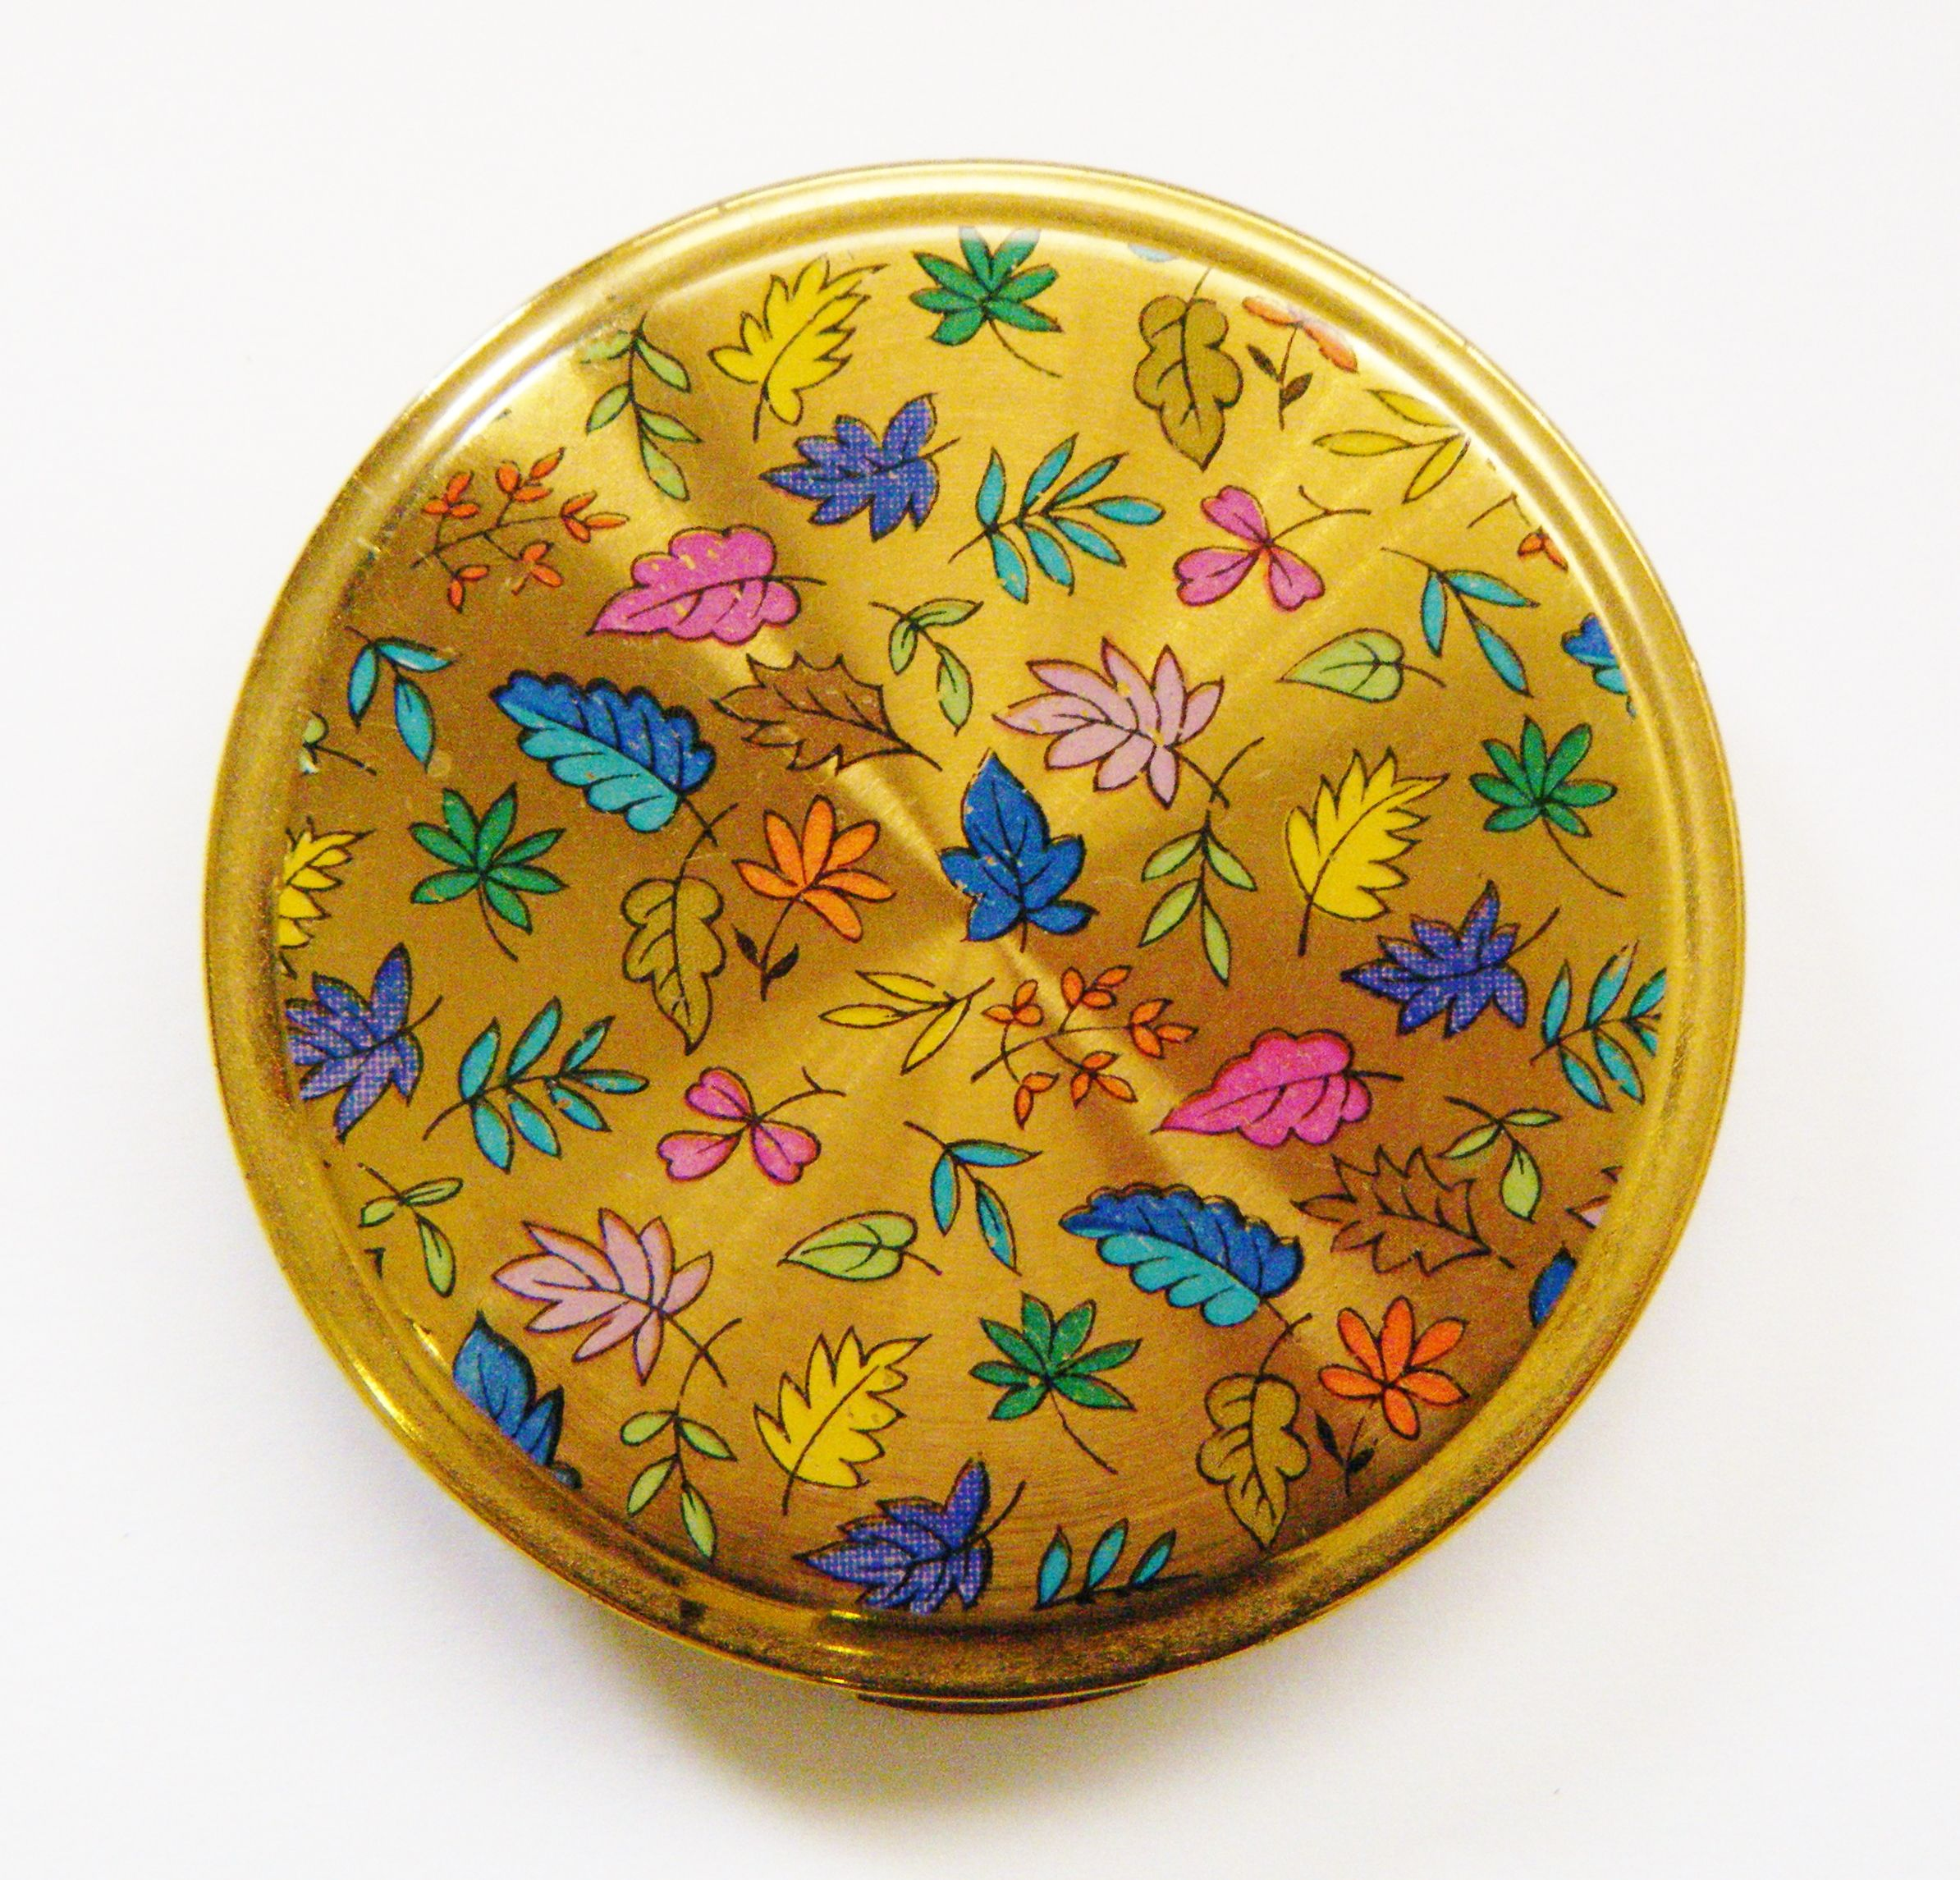 Colourful Leaves Darling Compact Compact shop, Colorful